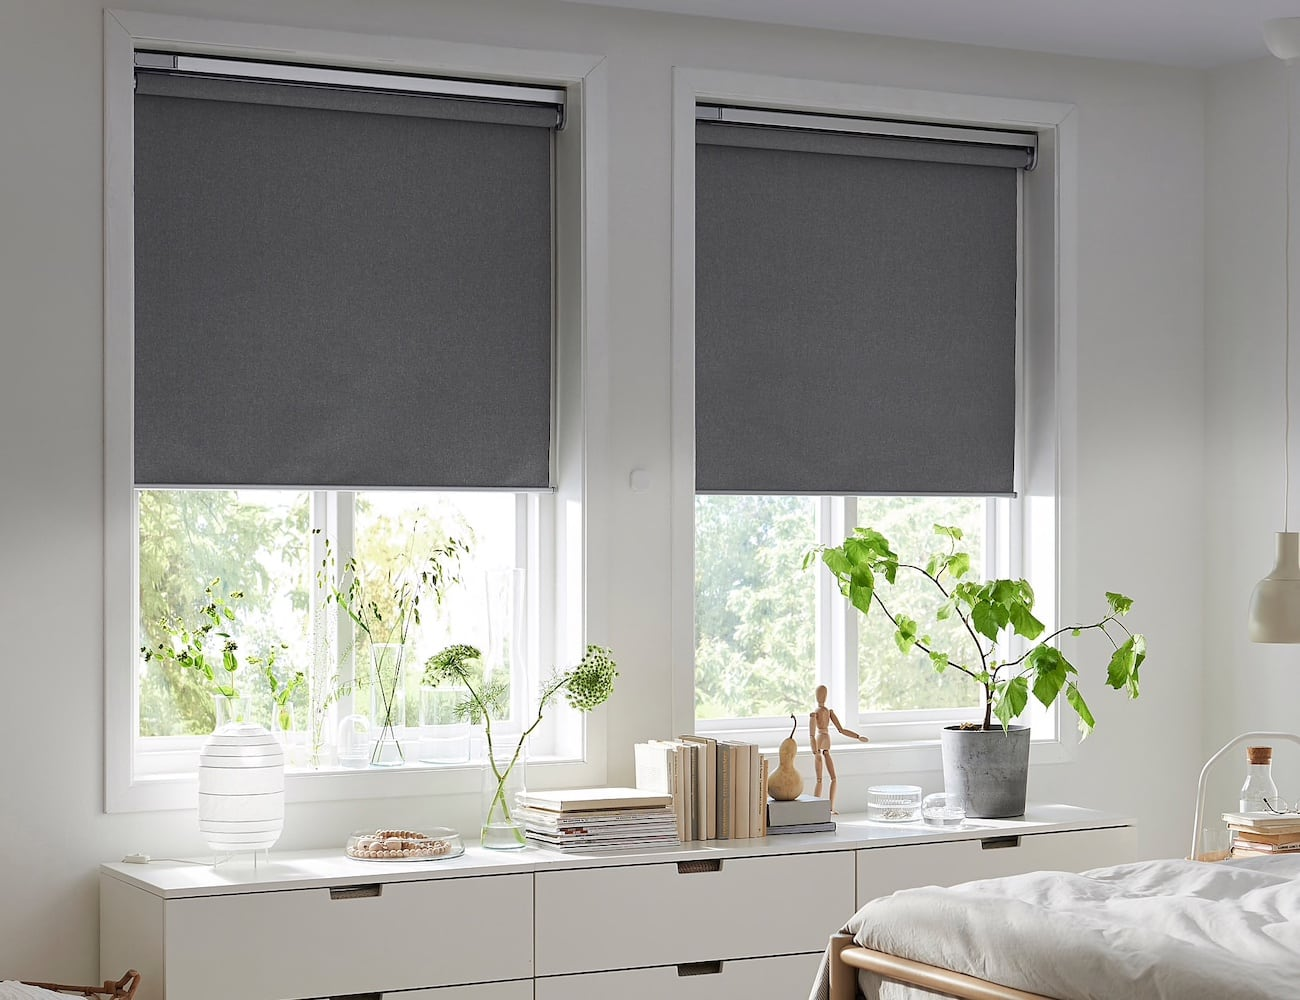 Ikea Window Ikea's Smart Window Blinds Let You Control Natural Light